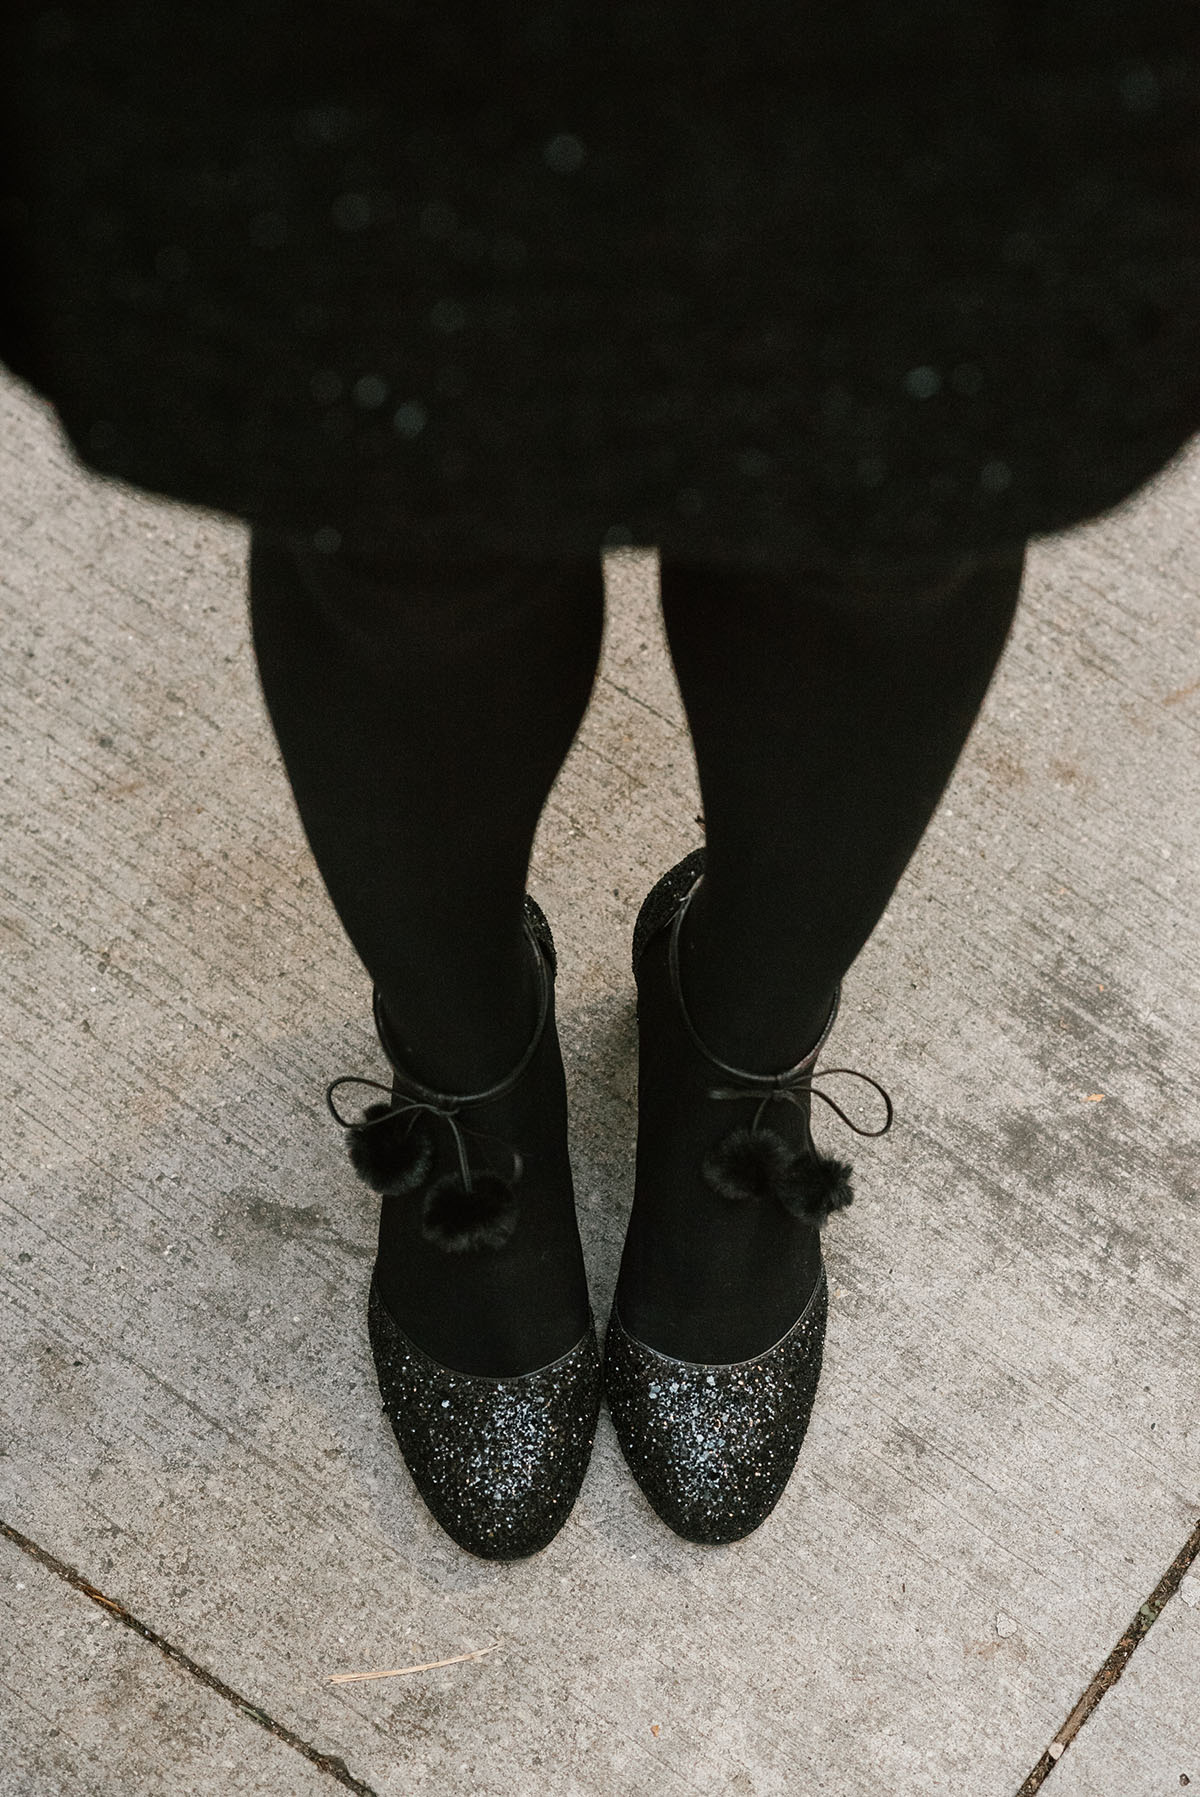 c8b8822b3851 Bows   Sequins wearing Kate Spade Black Glitter Abigail Pumps with Pom-Poms.